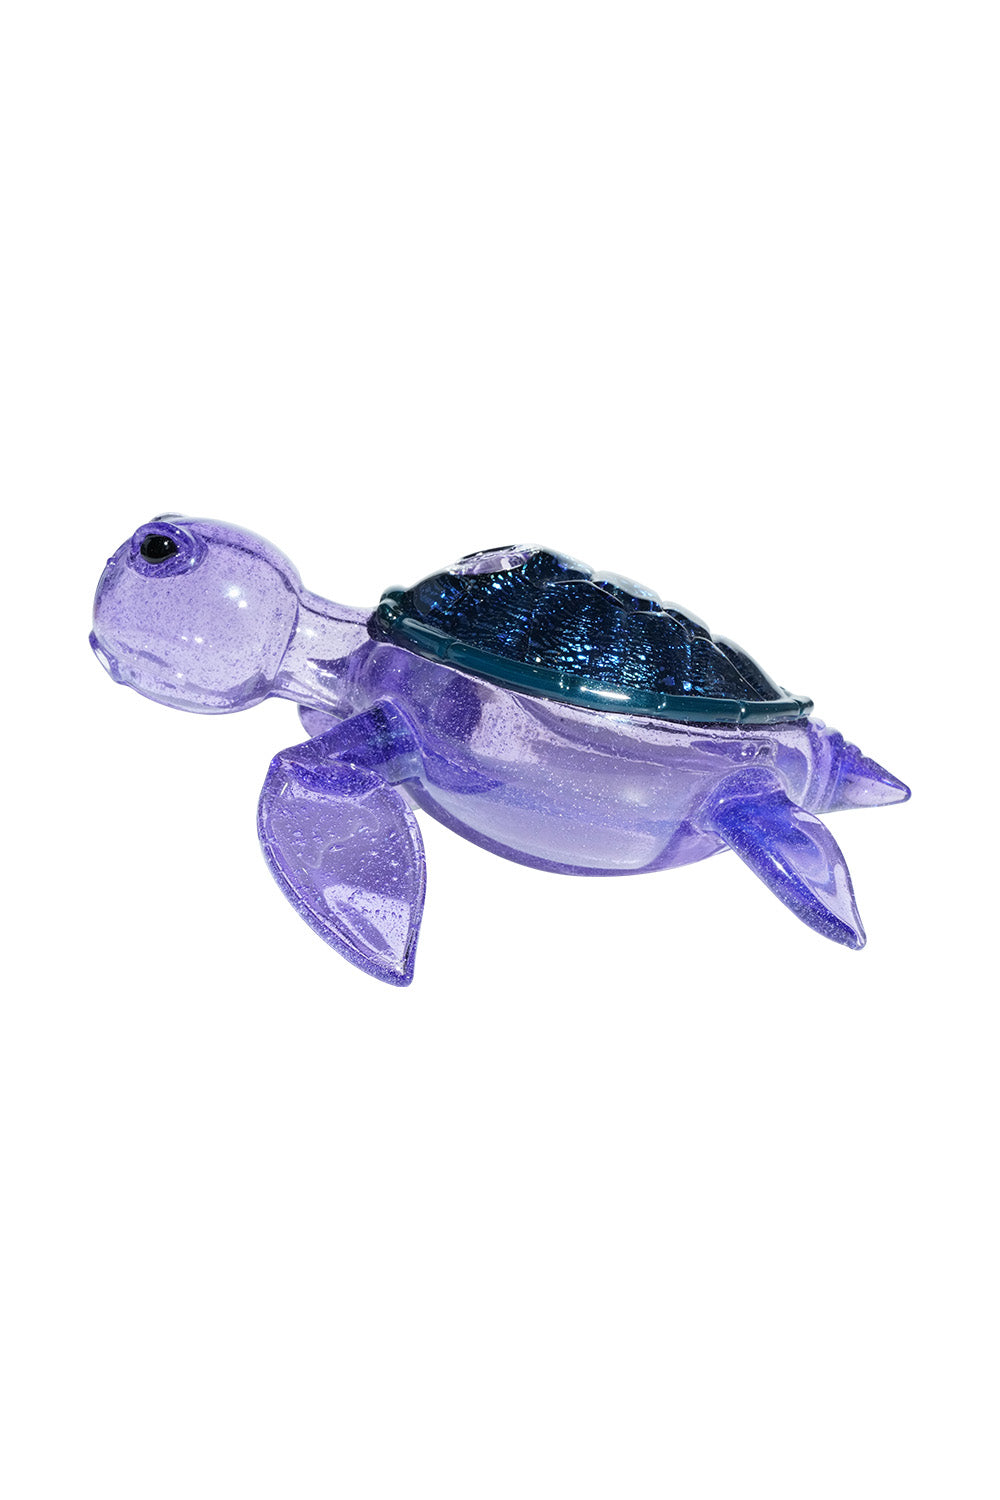 Turtle Time Purple Lollipop Turtle